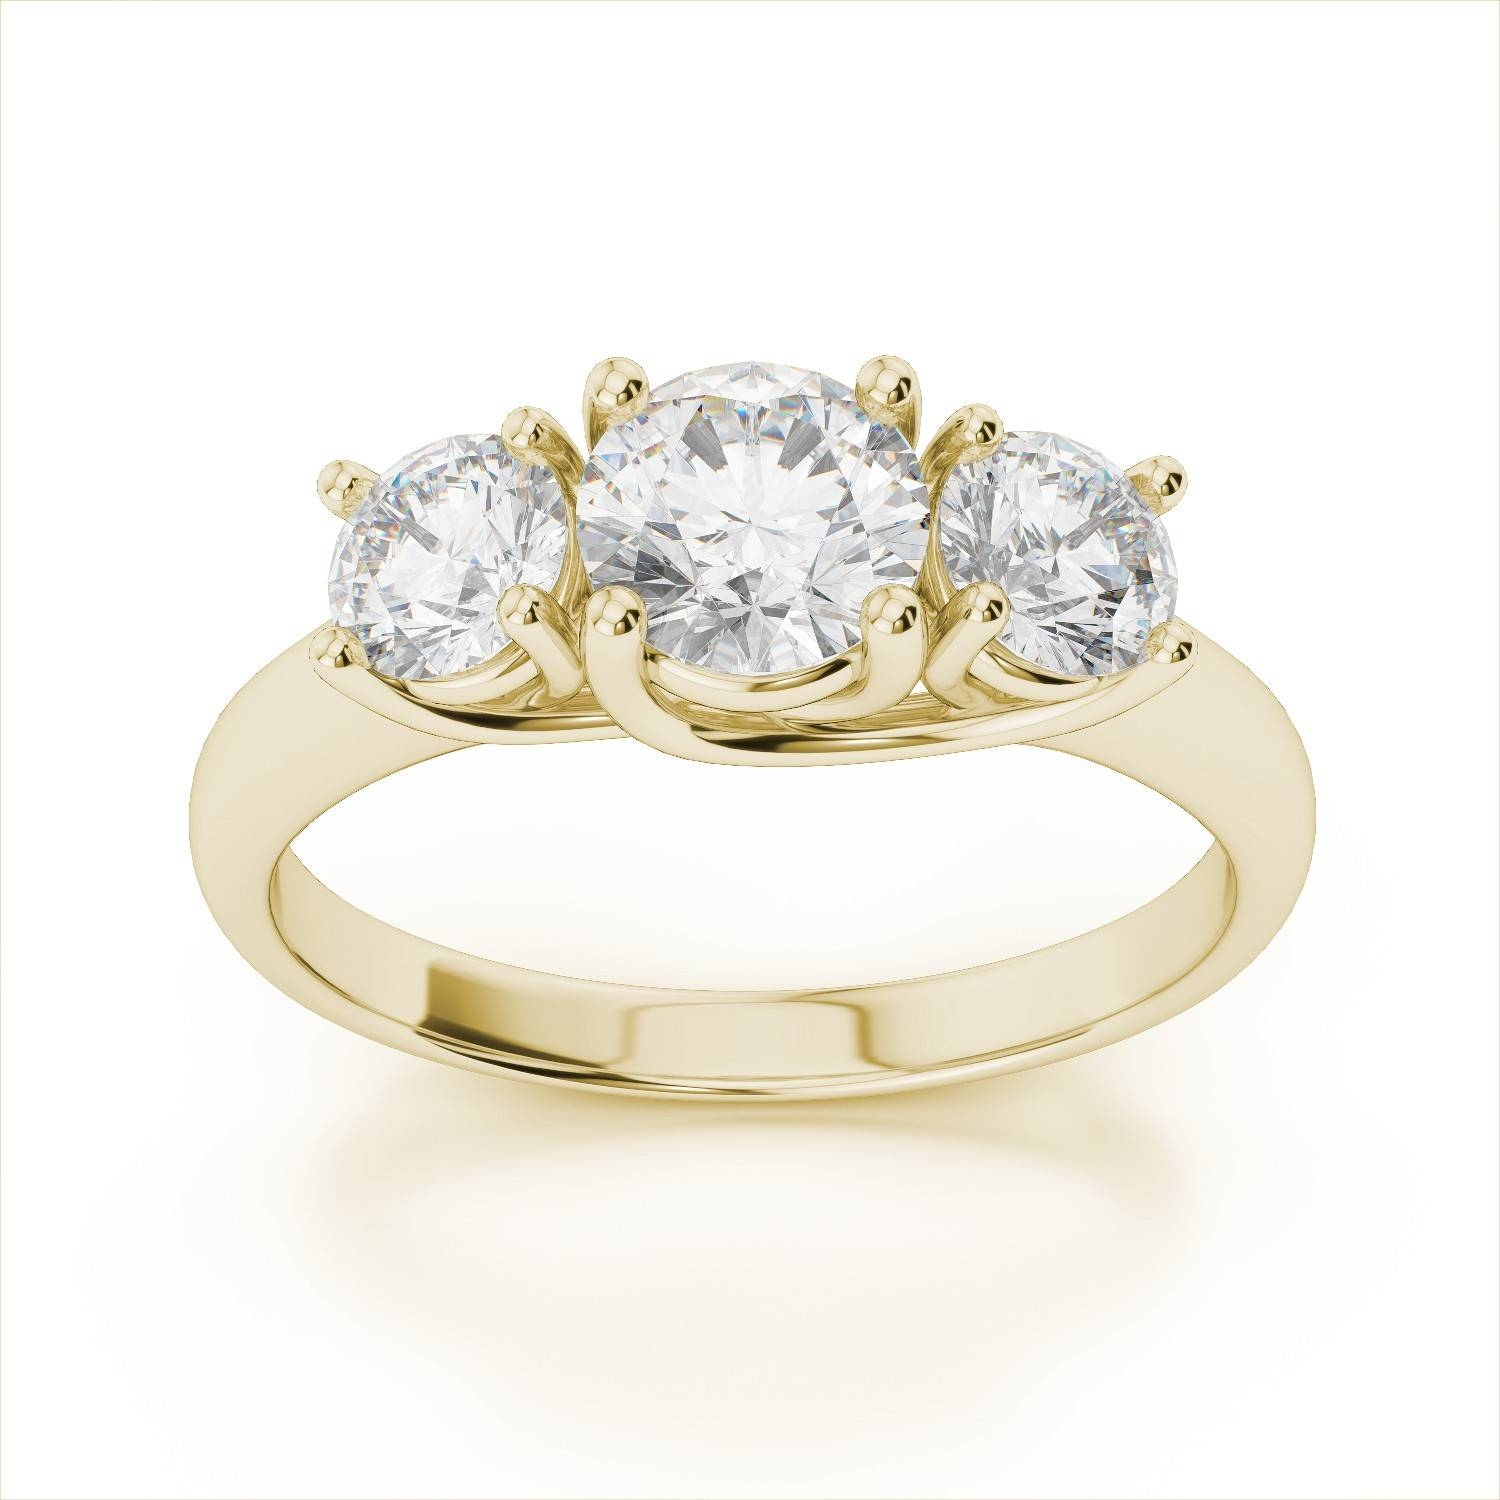 3 Stone Diamond Trellis Engagement Ring In 14K Yellow Gold Throughout Engagement Rings With Yellow Stone (Gallery 3 of 15)